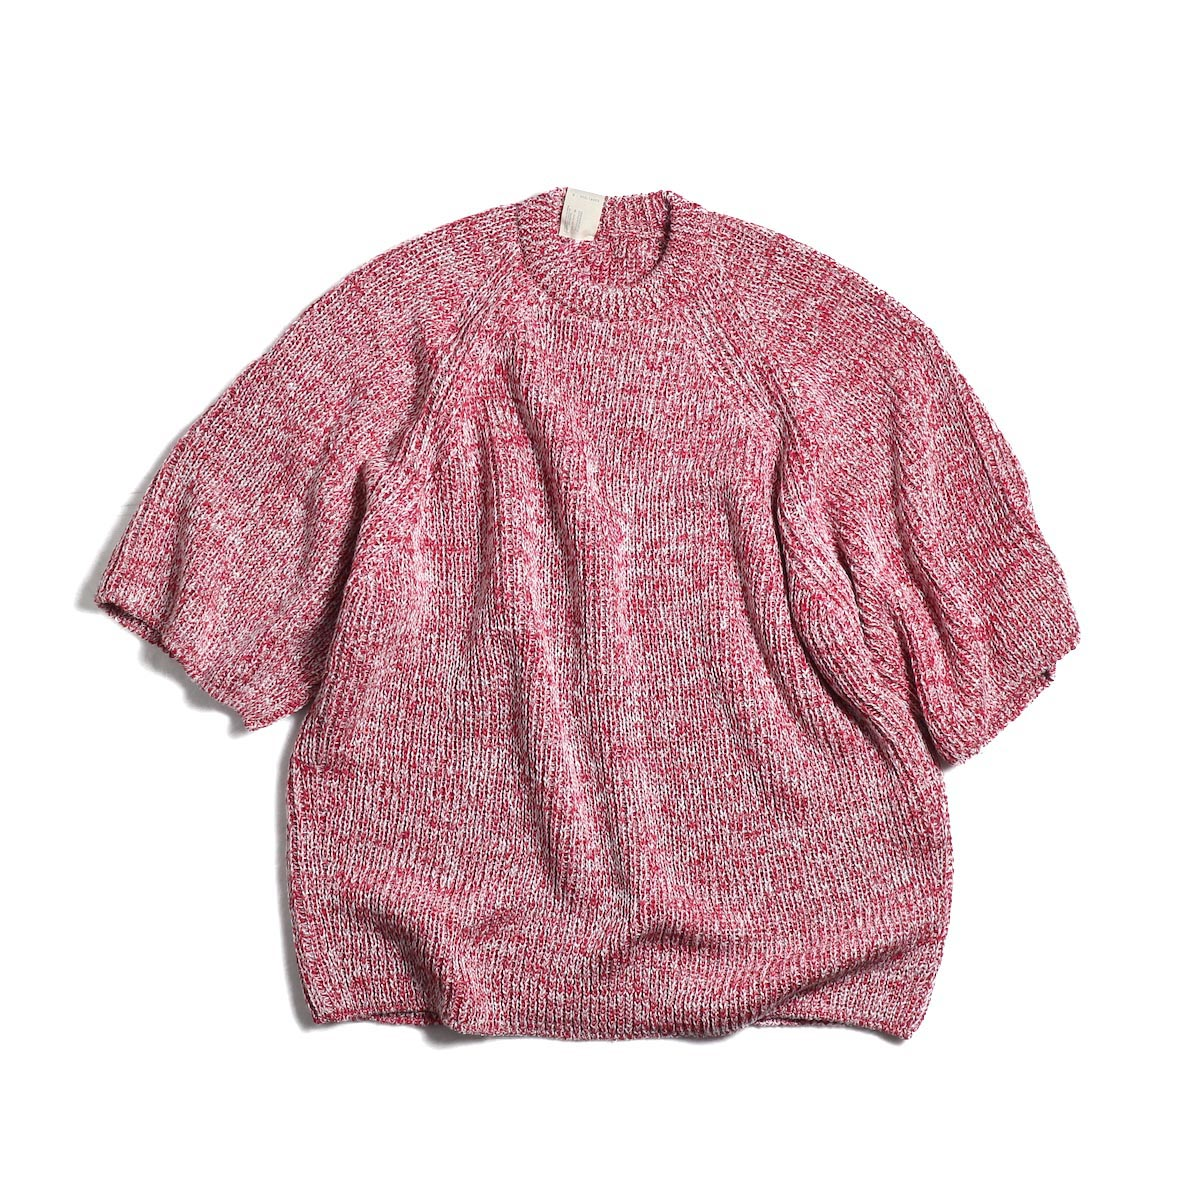 N.HOOLYWOOD / 191-KT05-063pieces Short Sleeve Knit -Red